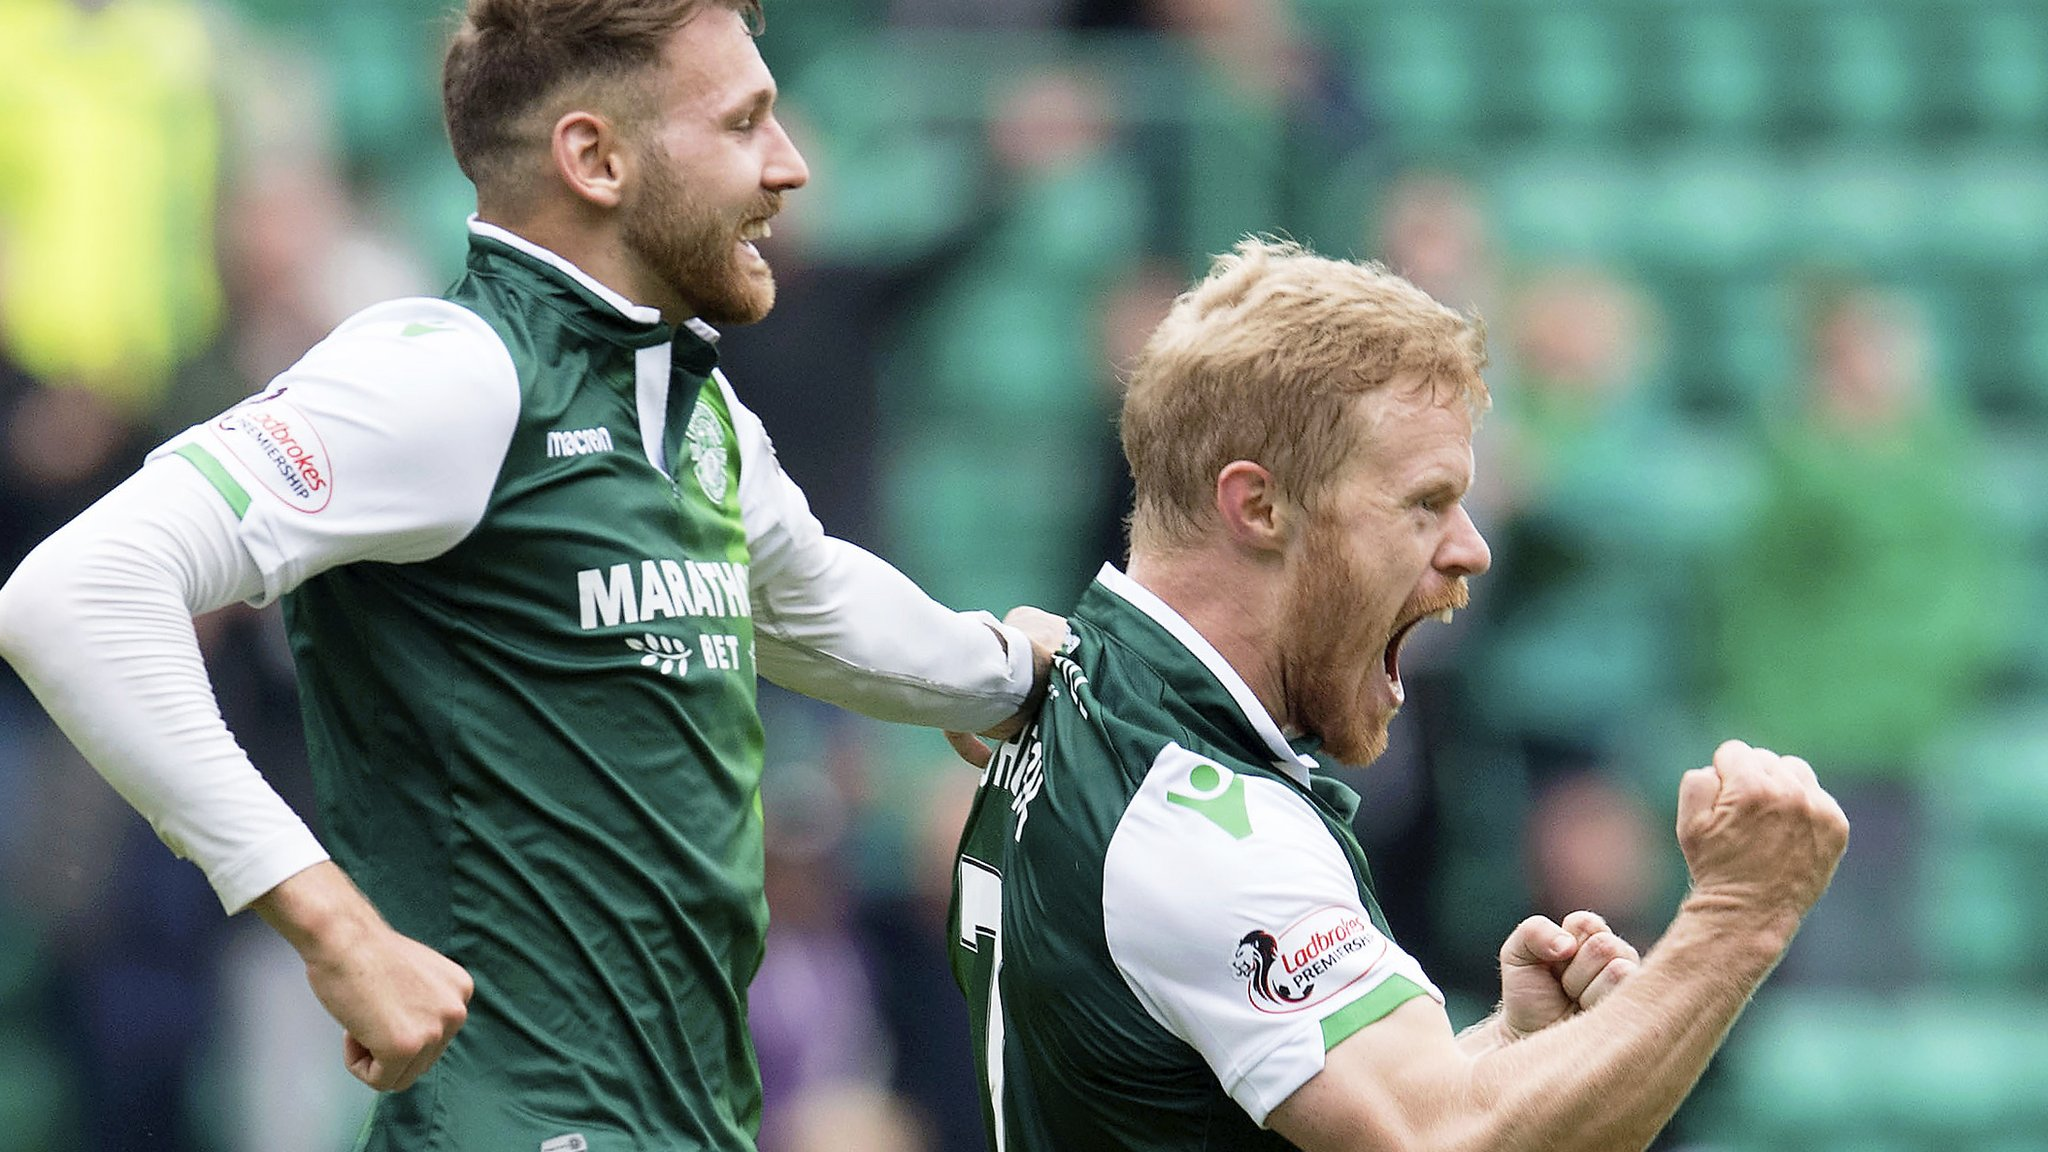 Horgan's late goal against County sets up Aberdeen tie for Hibs